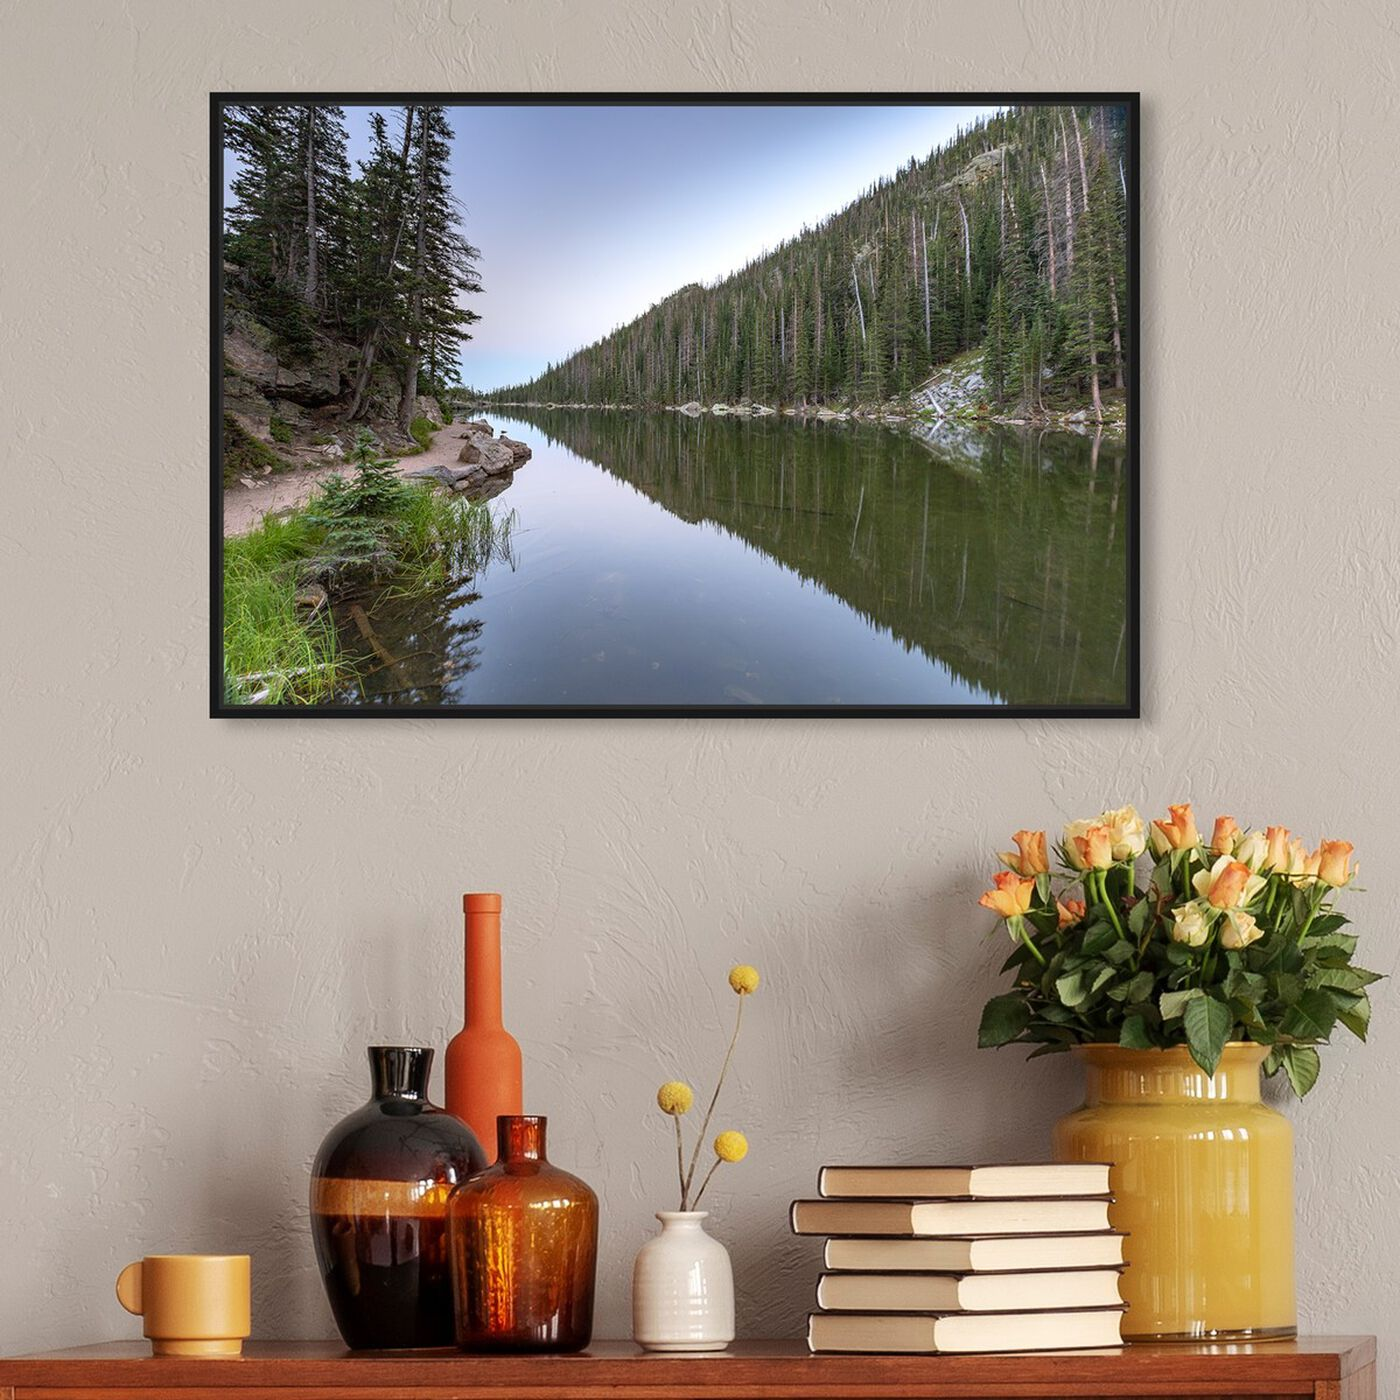 Hanging view of Curro Cardenal - Winding River featuring nature and landscape and nature art.